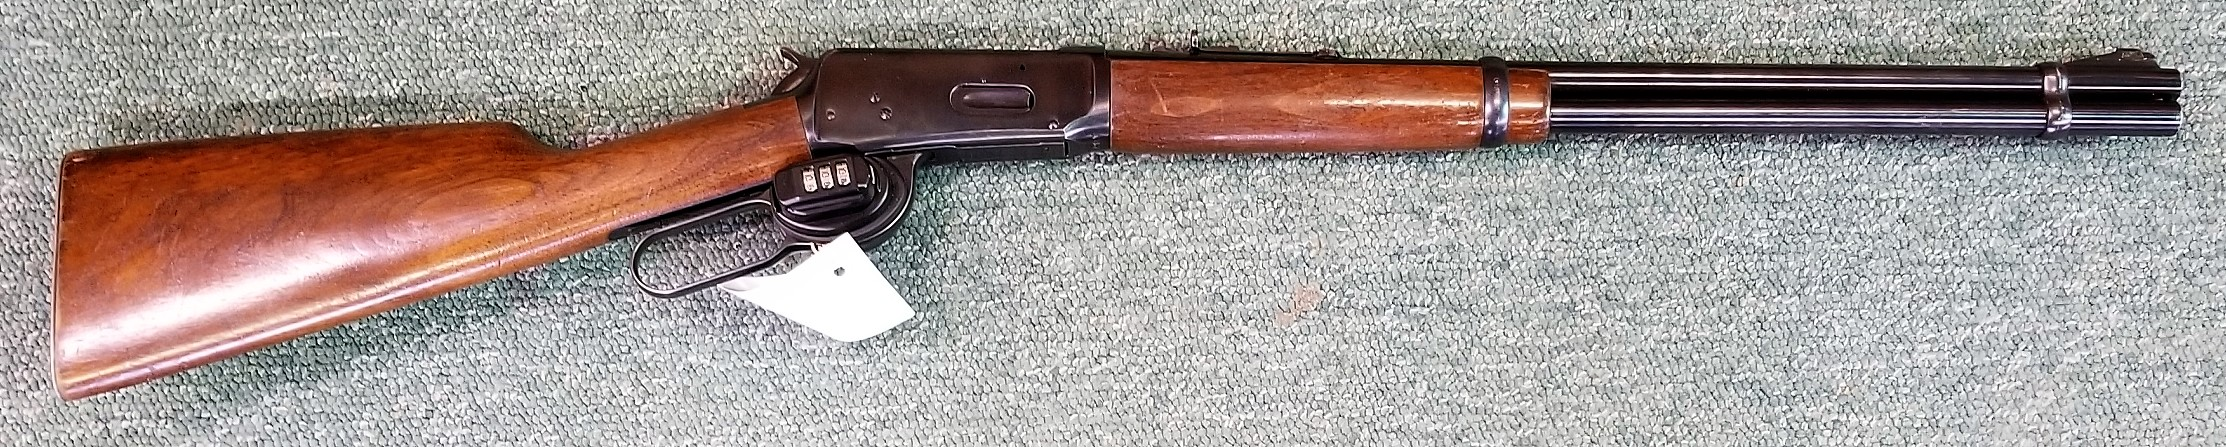 WInchester Model 94 (used pre 64) 30-30 - Click Image to Close